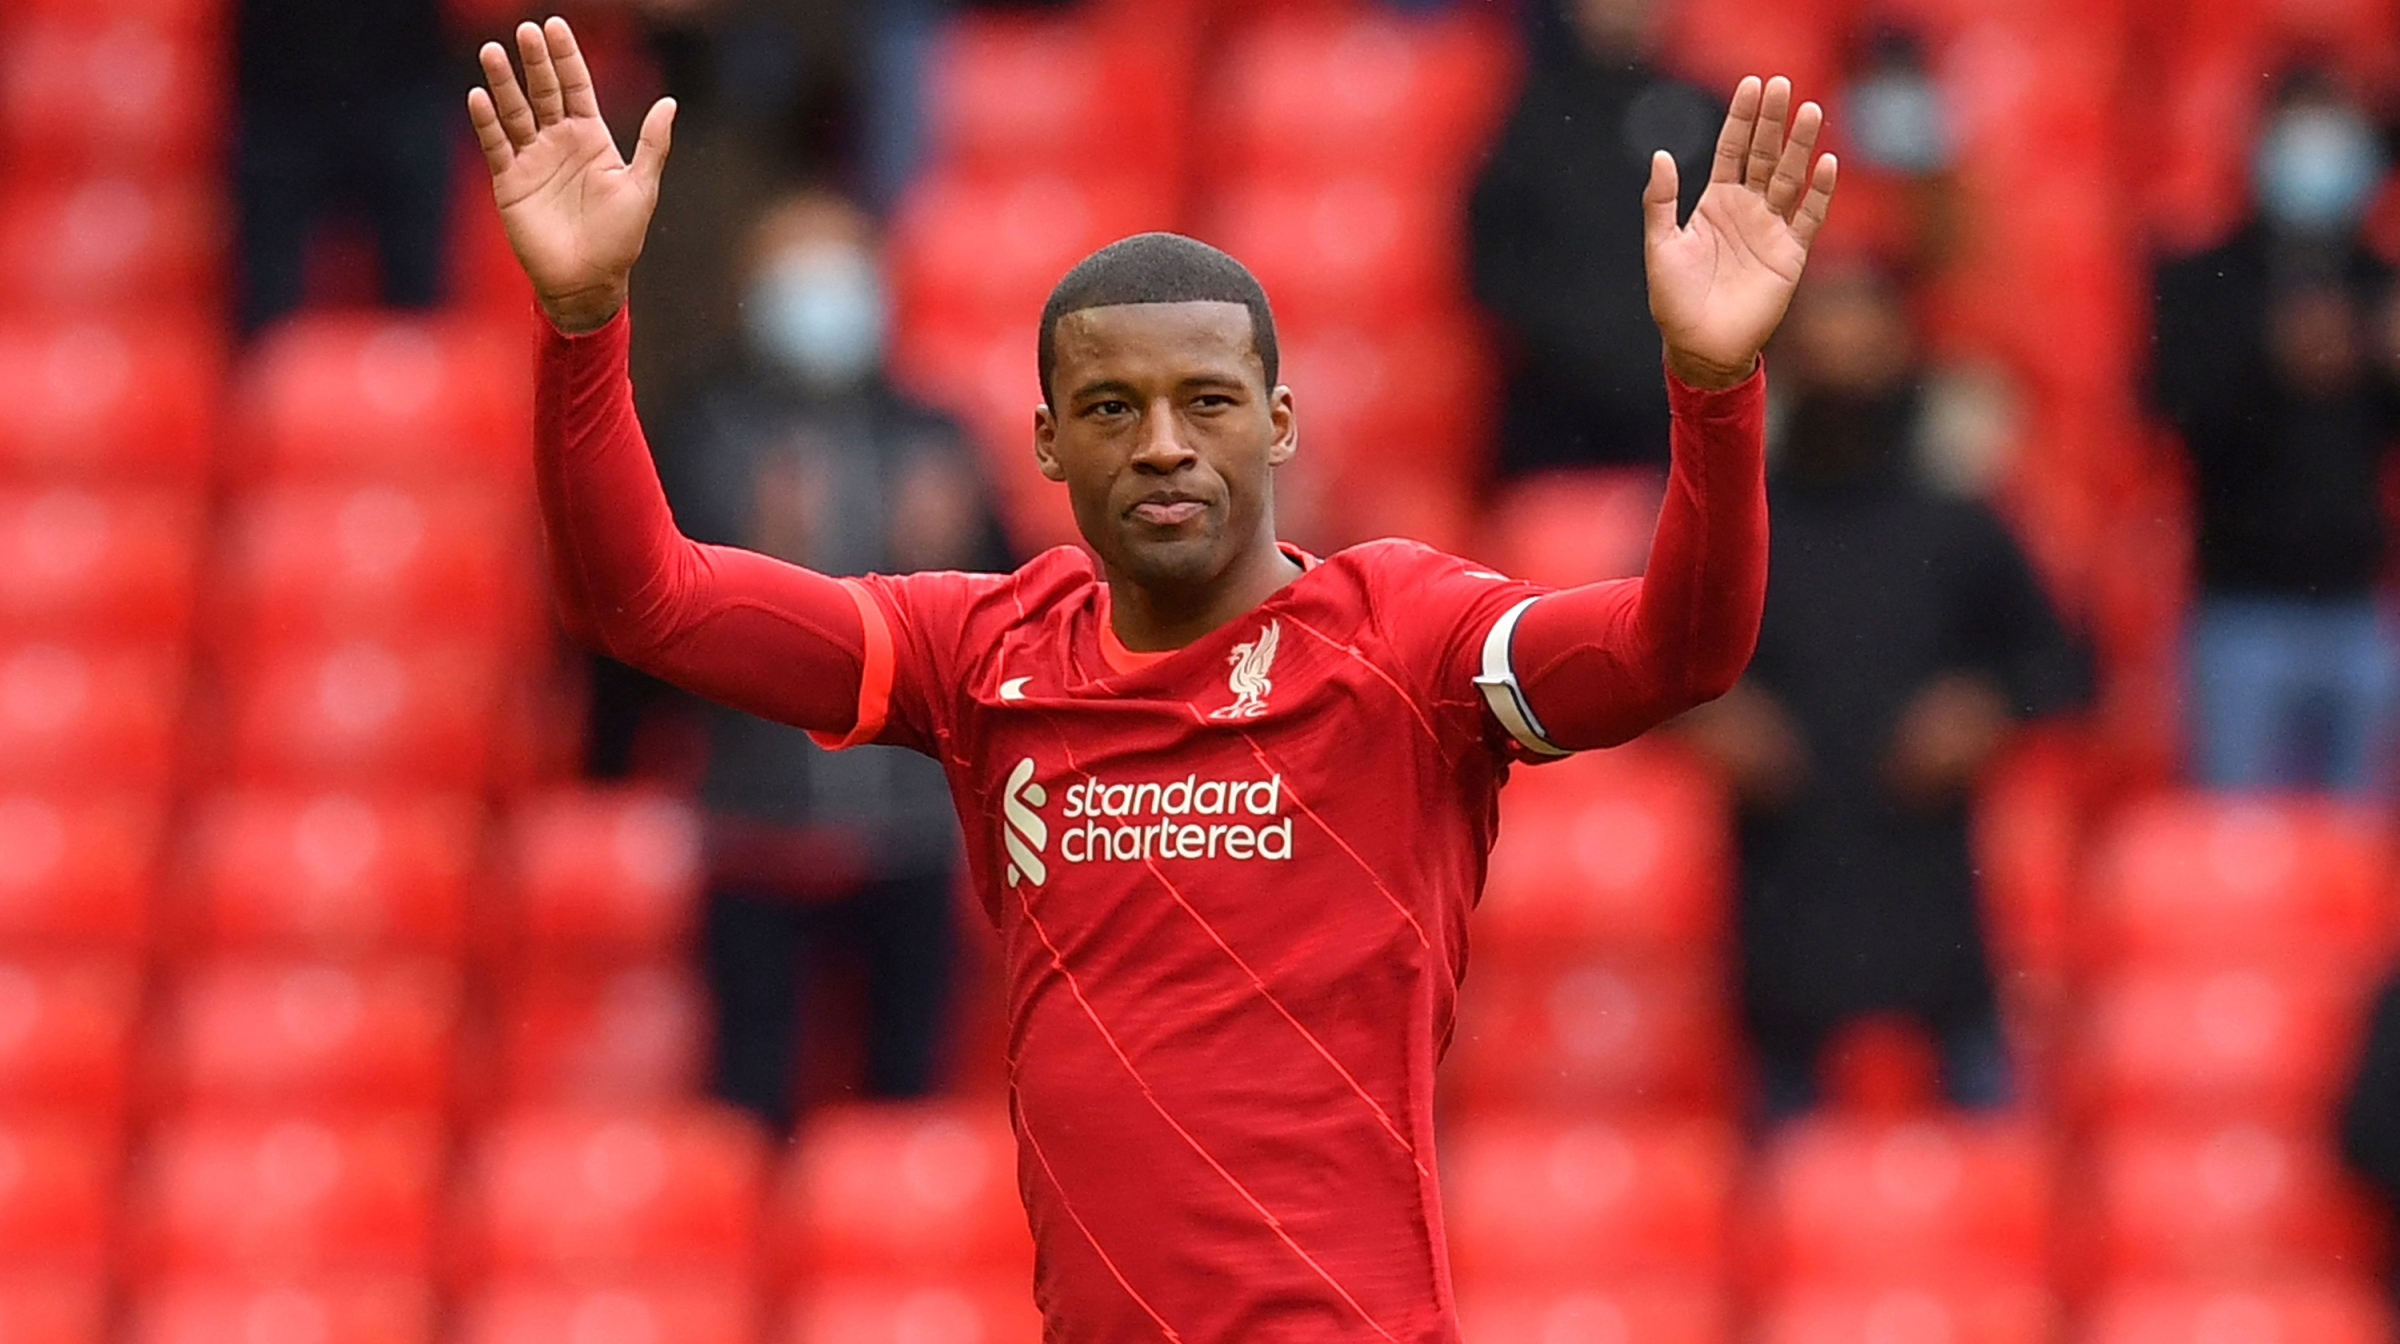 Liverpool's Dutch midfielder Georginio Wijnaldum leaves the pitch after being substituted off during the English Premier League football match between Liverpool and Crystal Palace at Anfield in Liverpool, north west England on May 23, 2021.